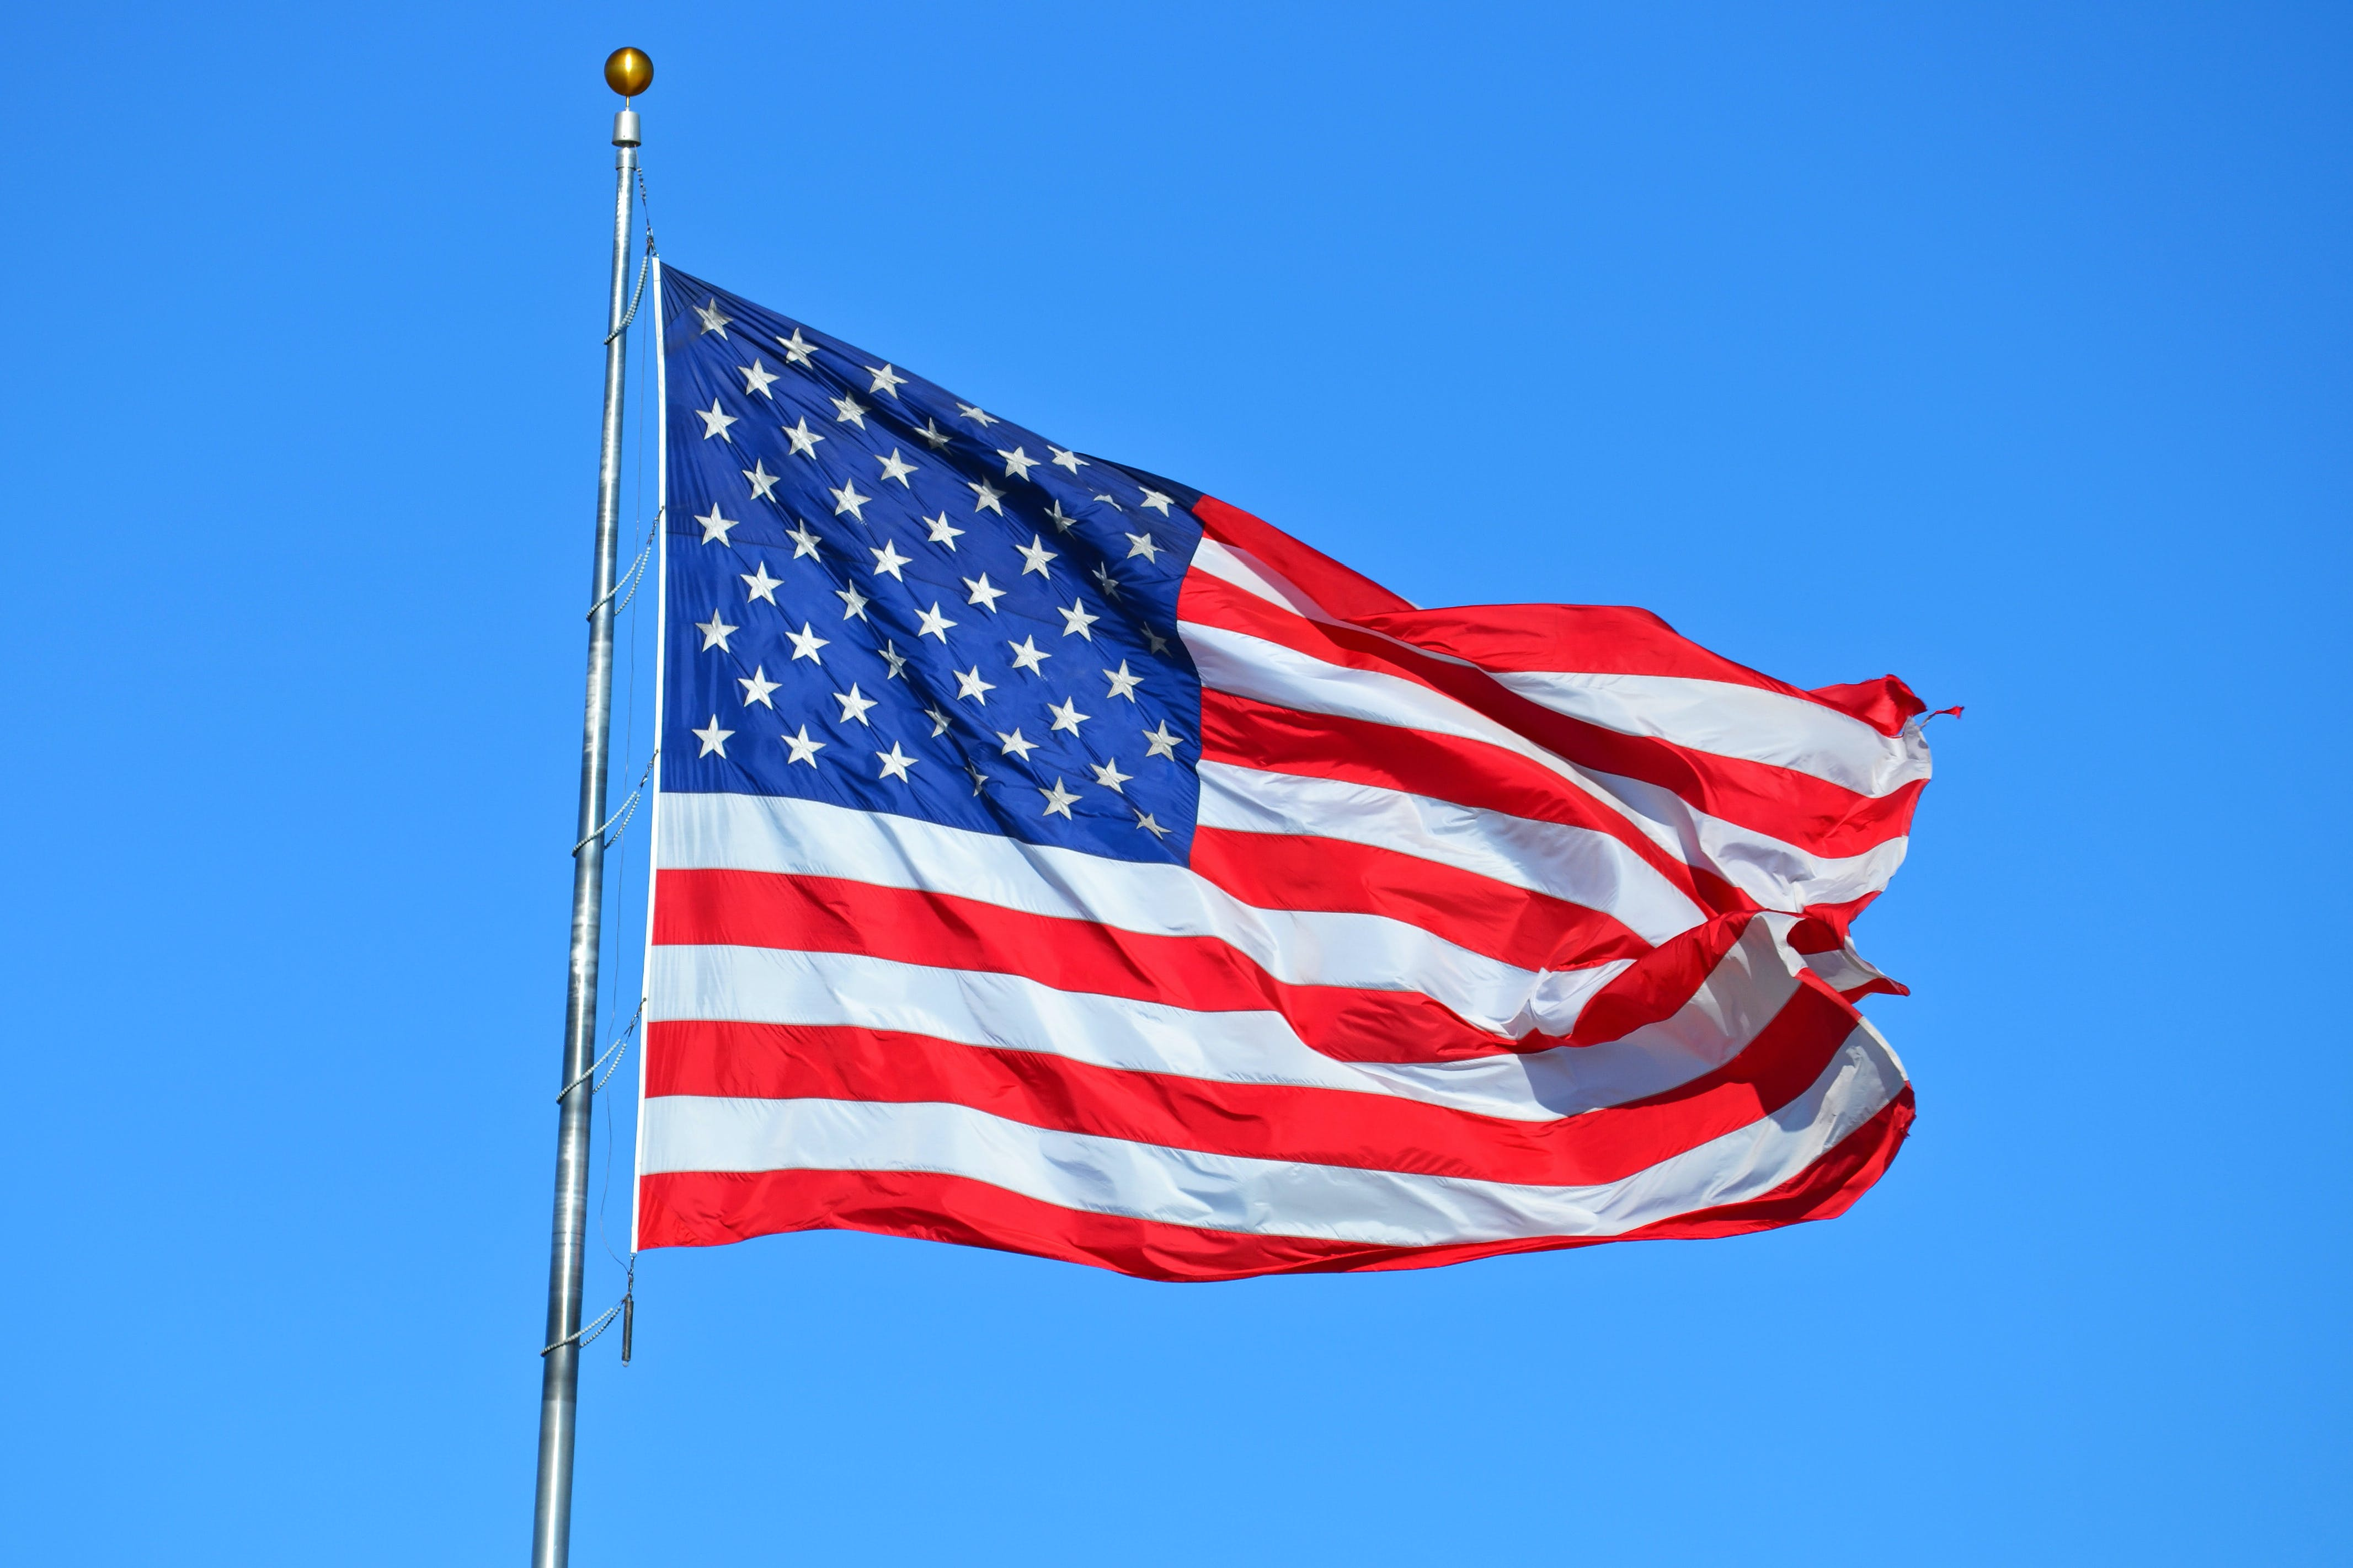 administration, American flag, country